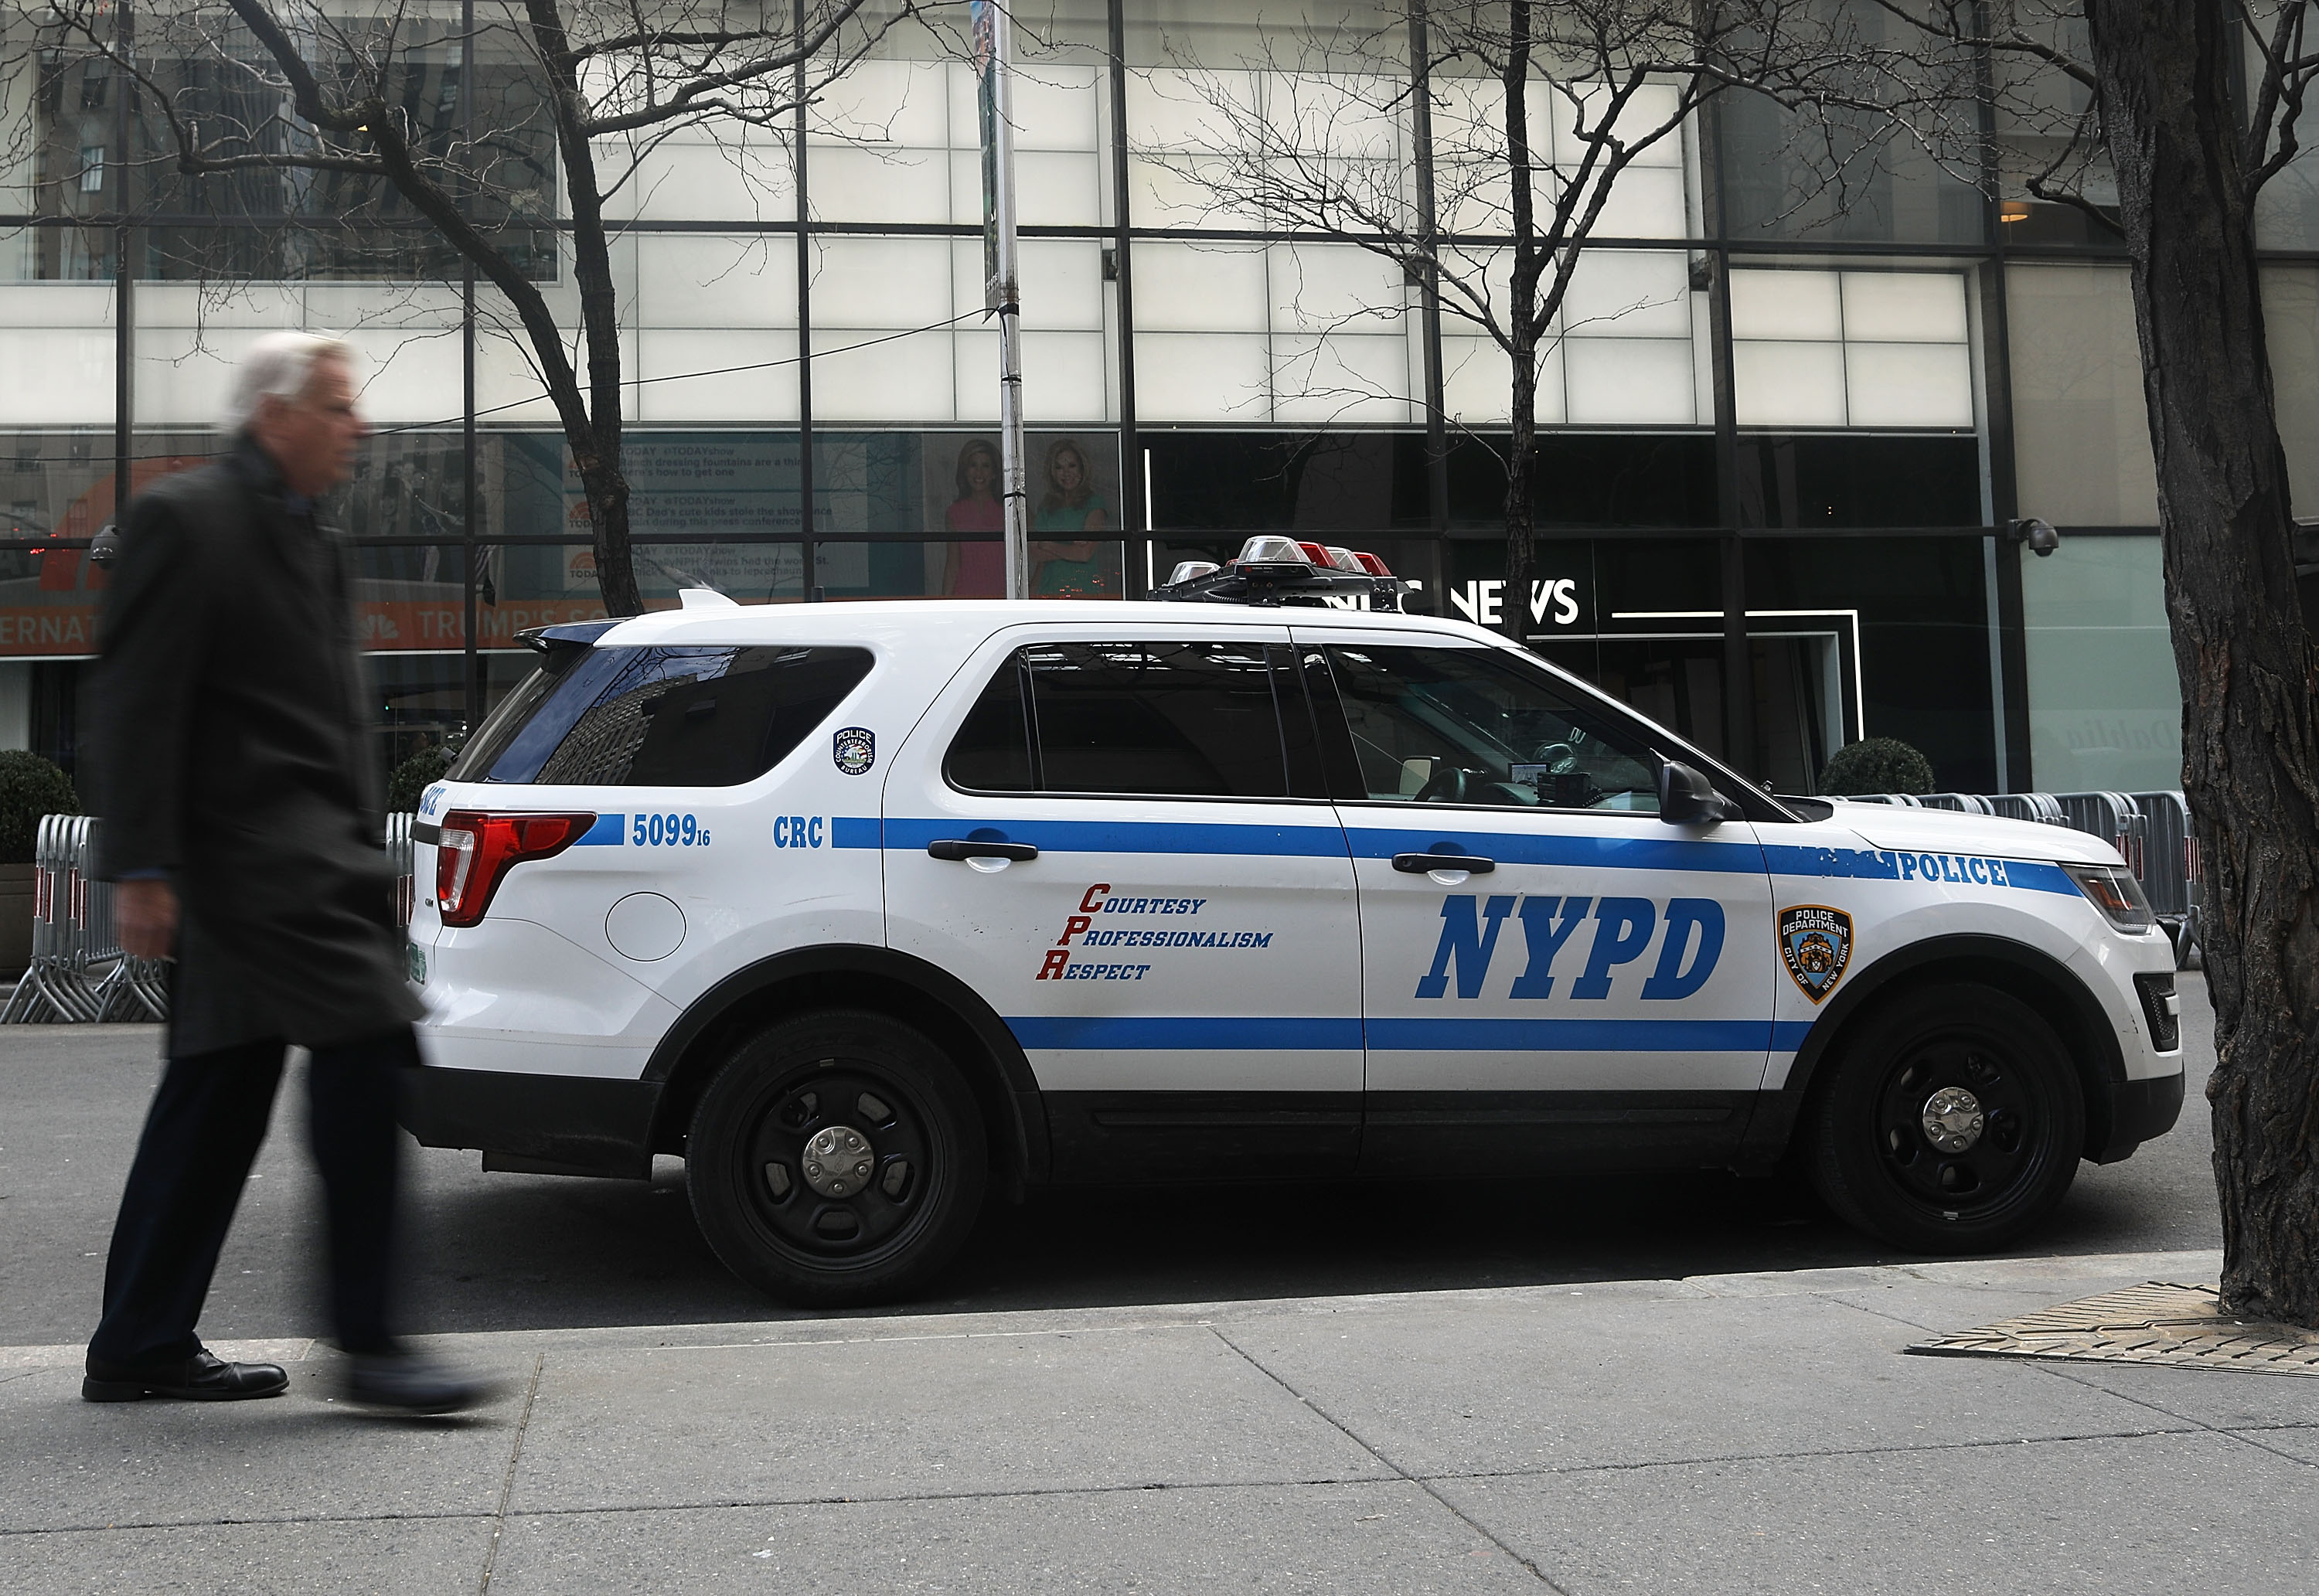 A 3rd NYPD member dies of coronavirus after hundreds of officers test positive